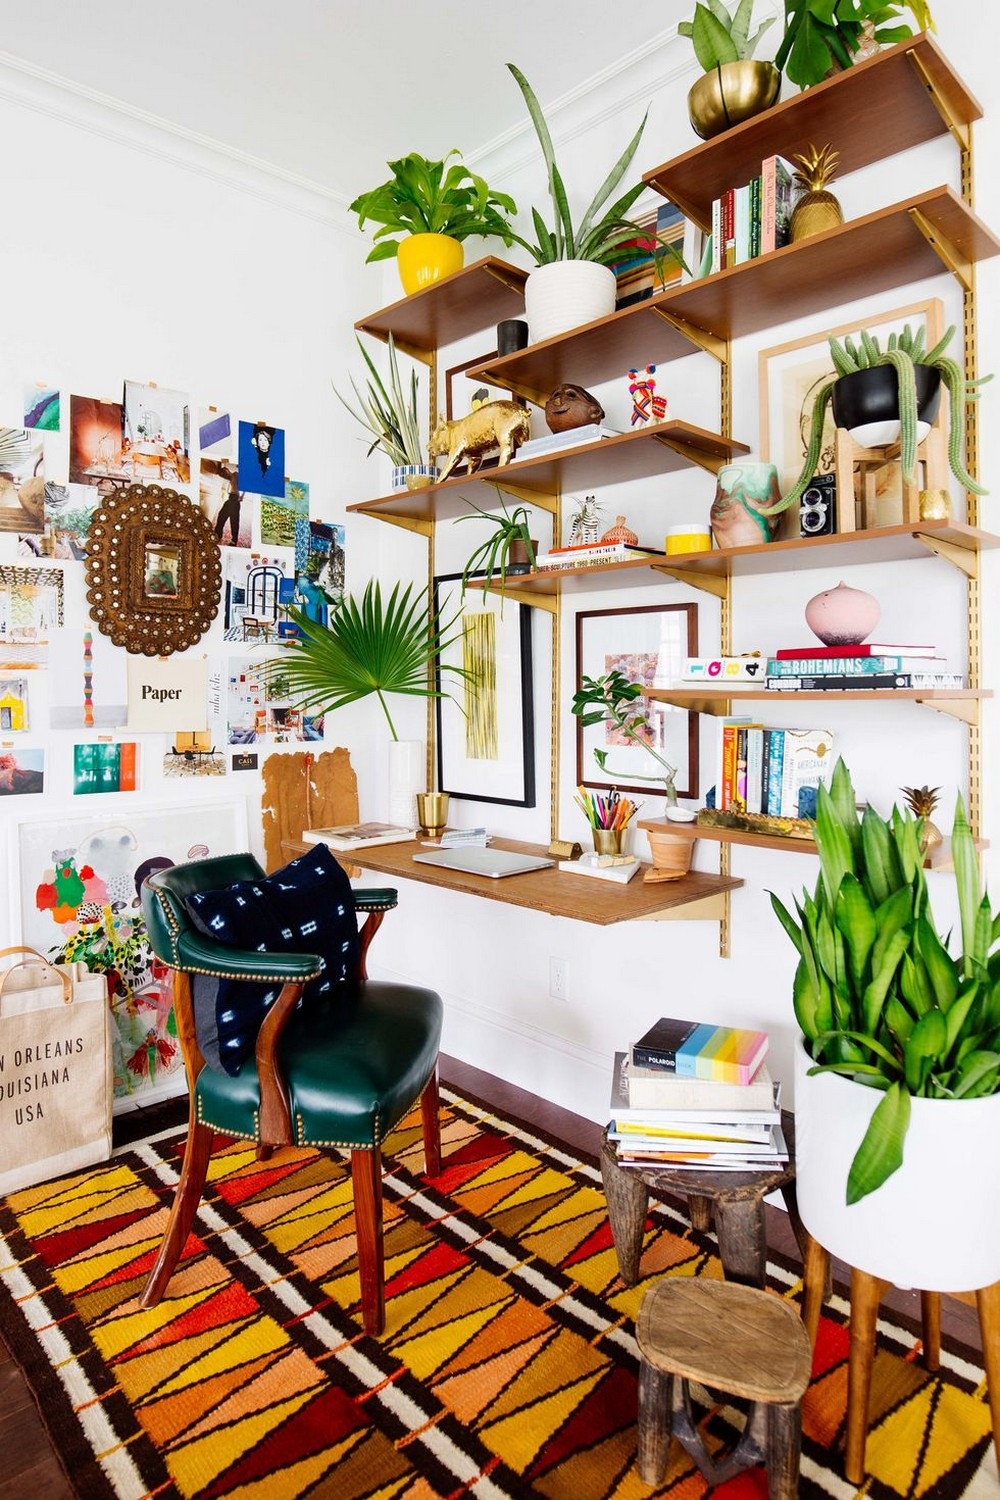 Inspirational Office Decor Ideas For 2019 By House Beautiful office decor ideas Inspirational Office Decor Ideas For 2019 By House Beautiful Inspirational Office Decor Ideas For 2019 By House Beautiful 3